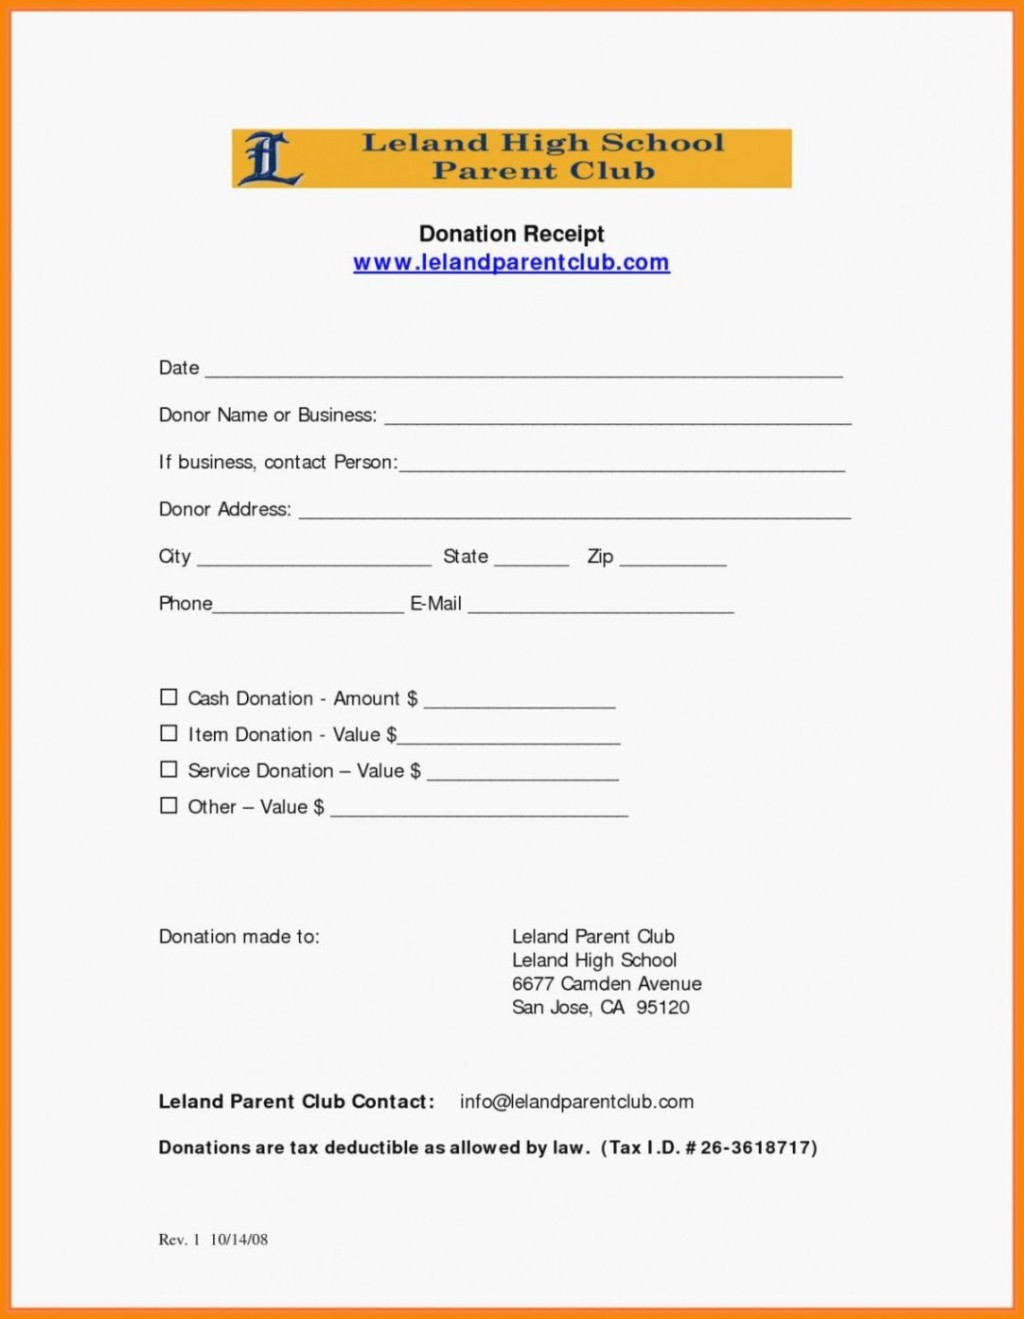 002 Staggering Tax Deductible Donation Receipt Template Australia Picture Large